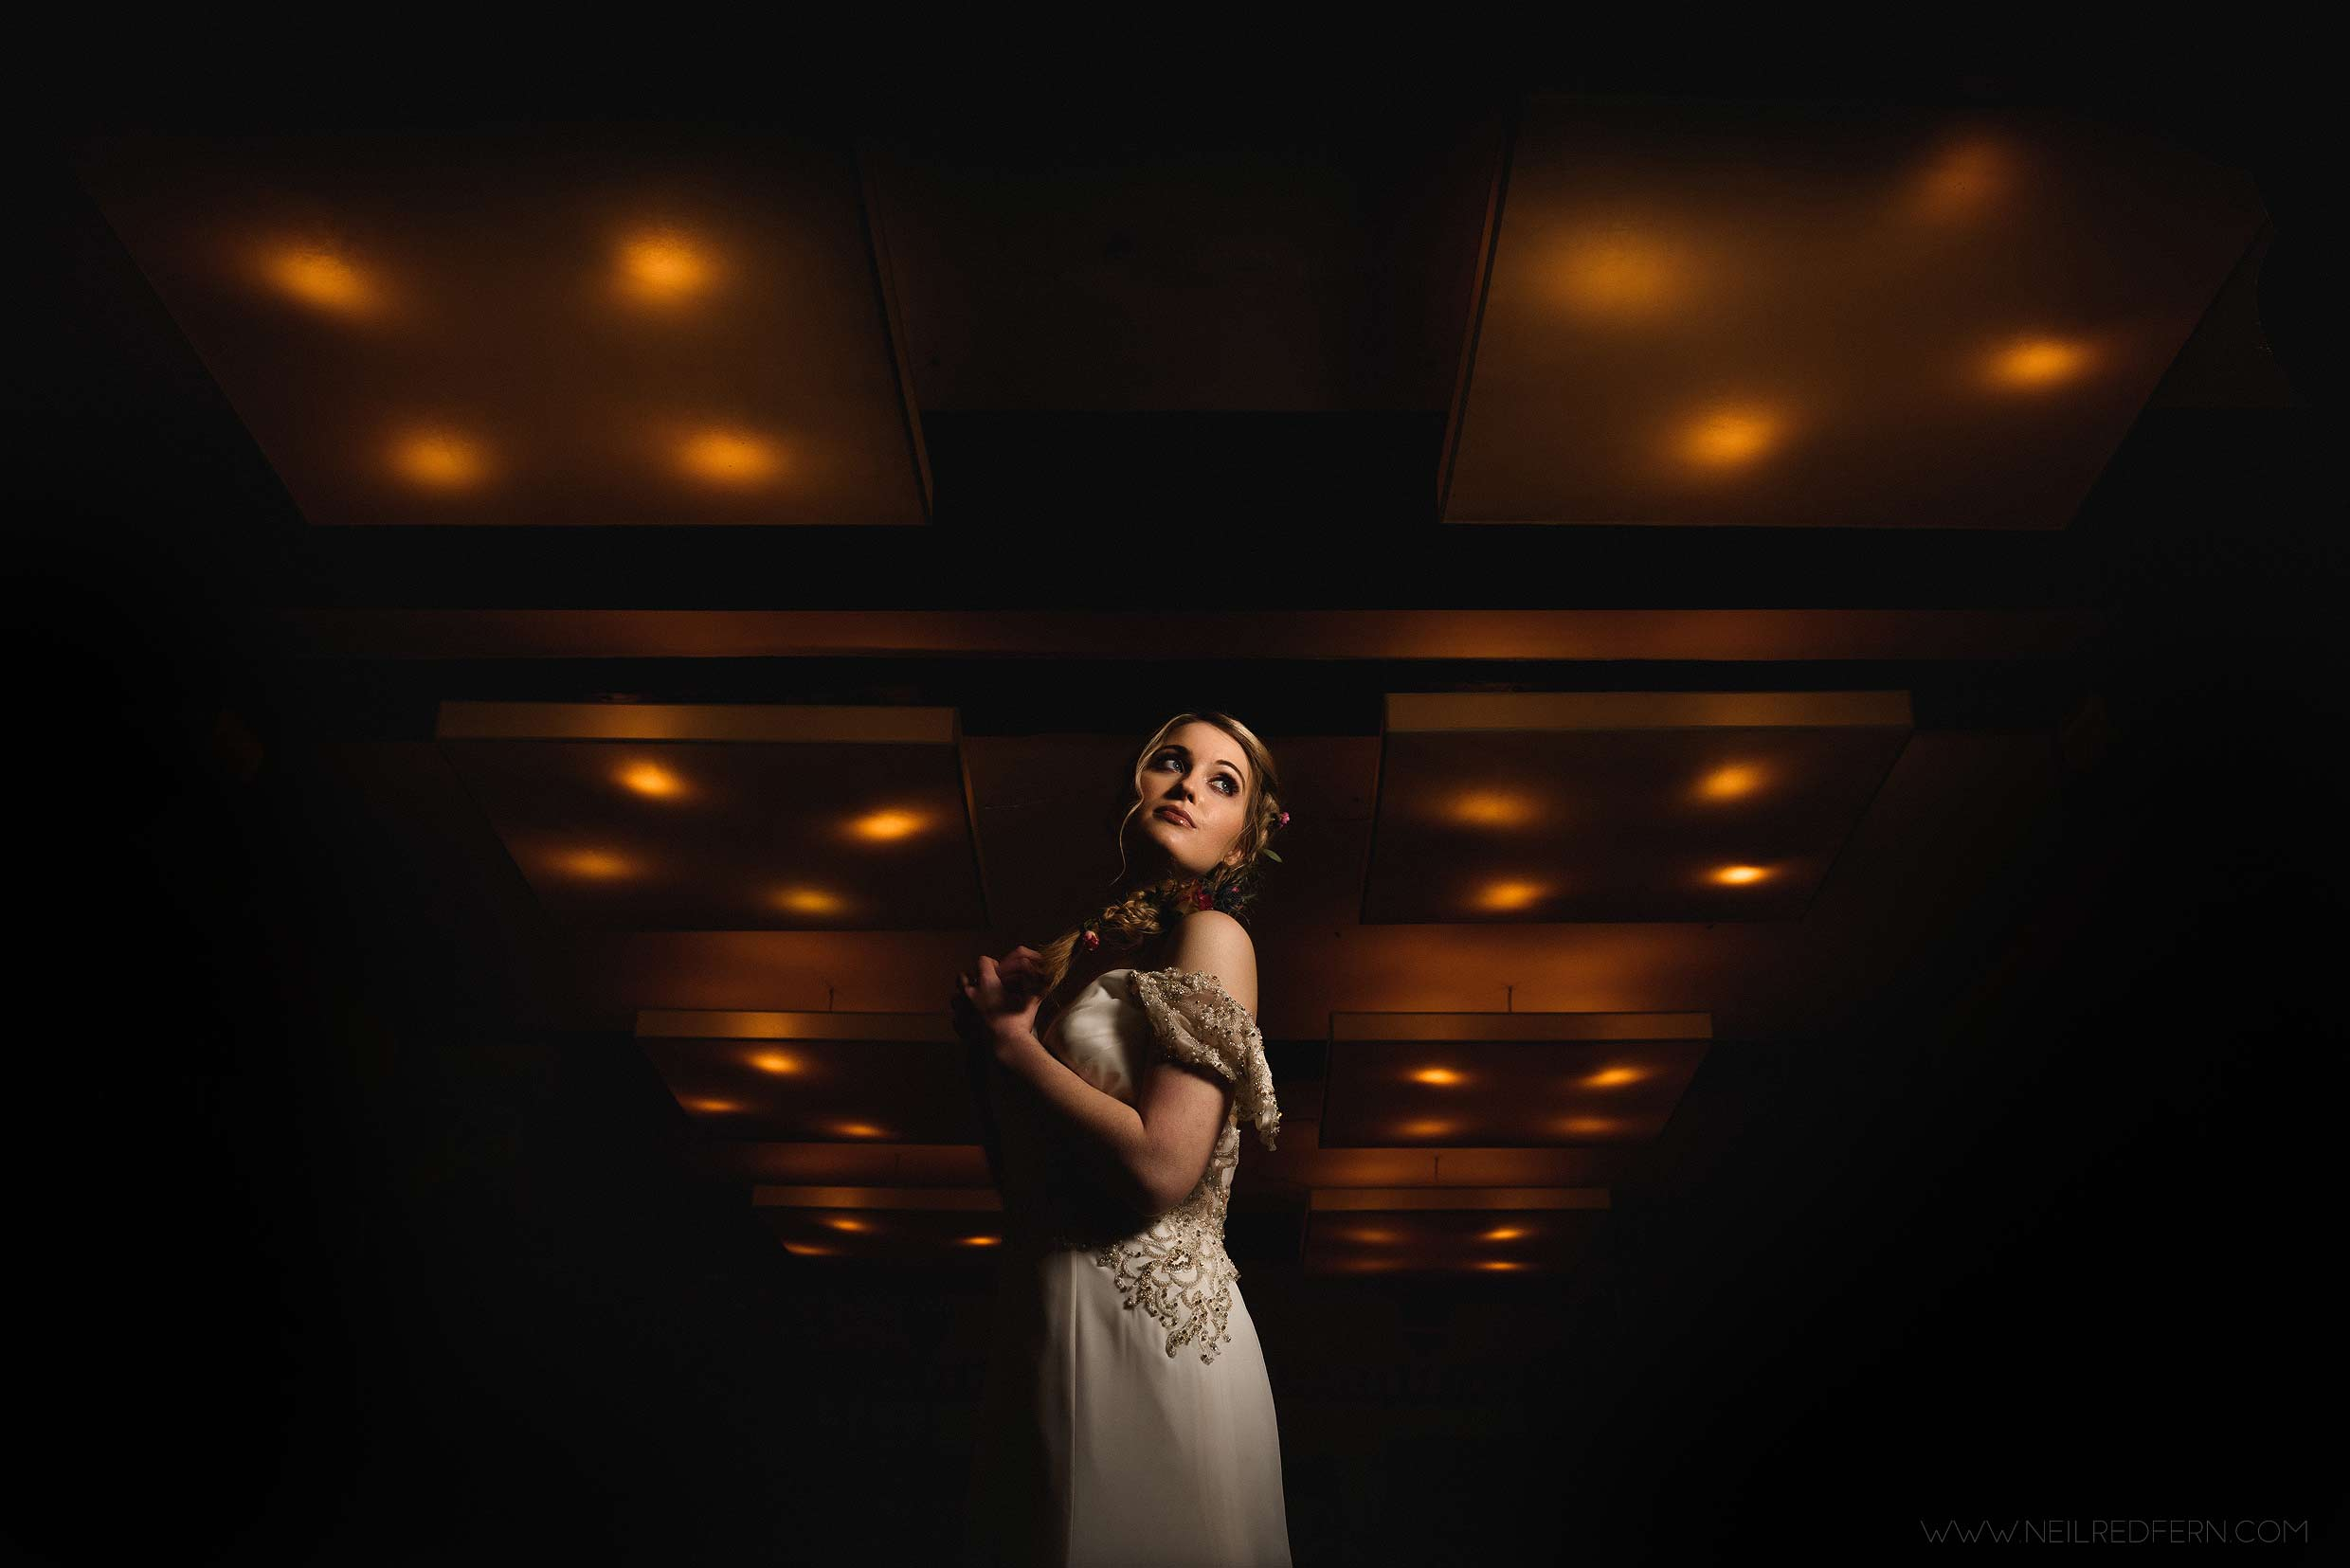 photograph taken at a wedding photography course in the north west